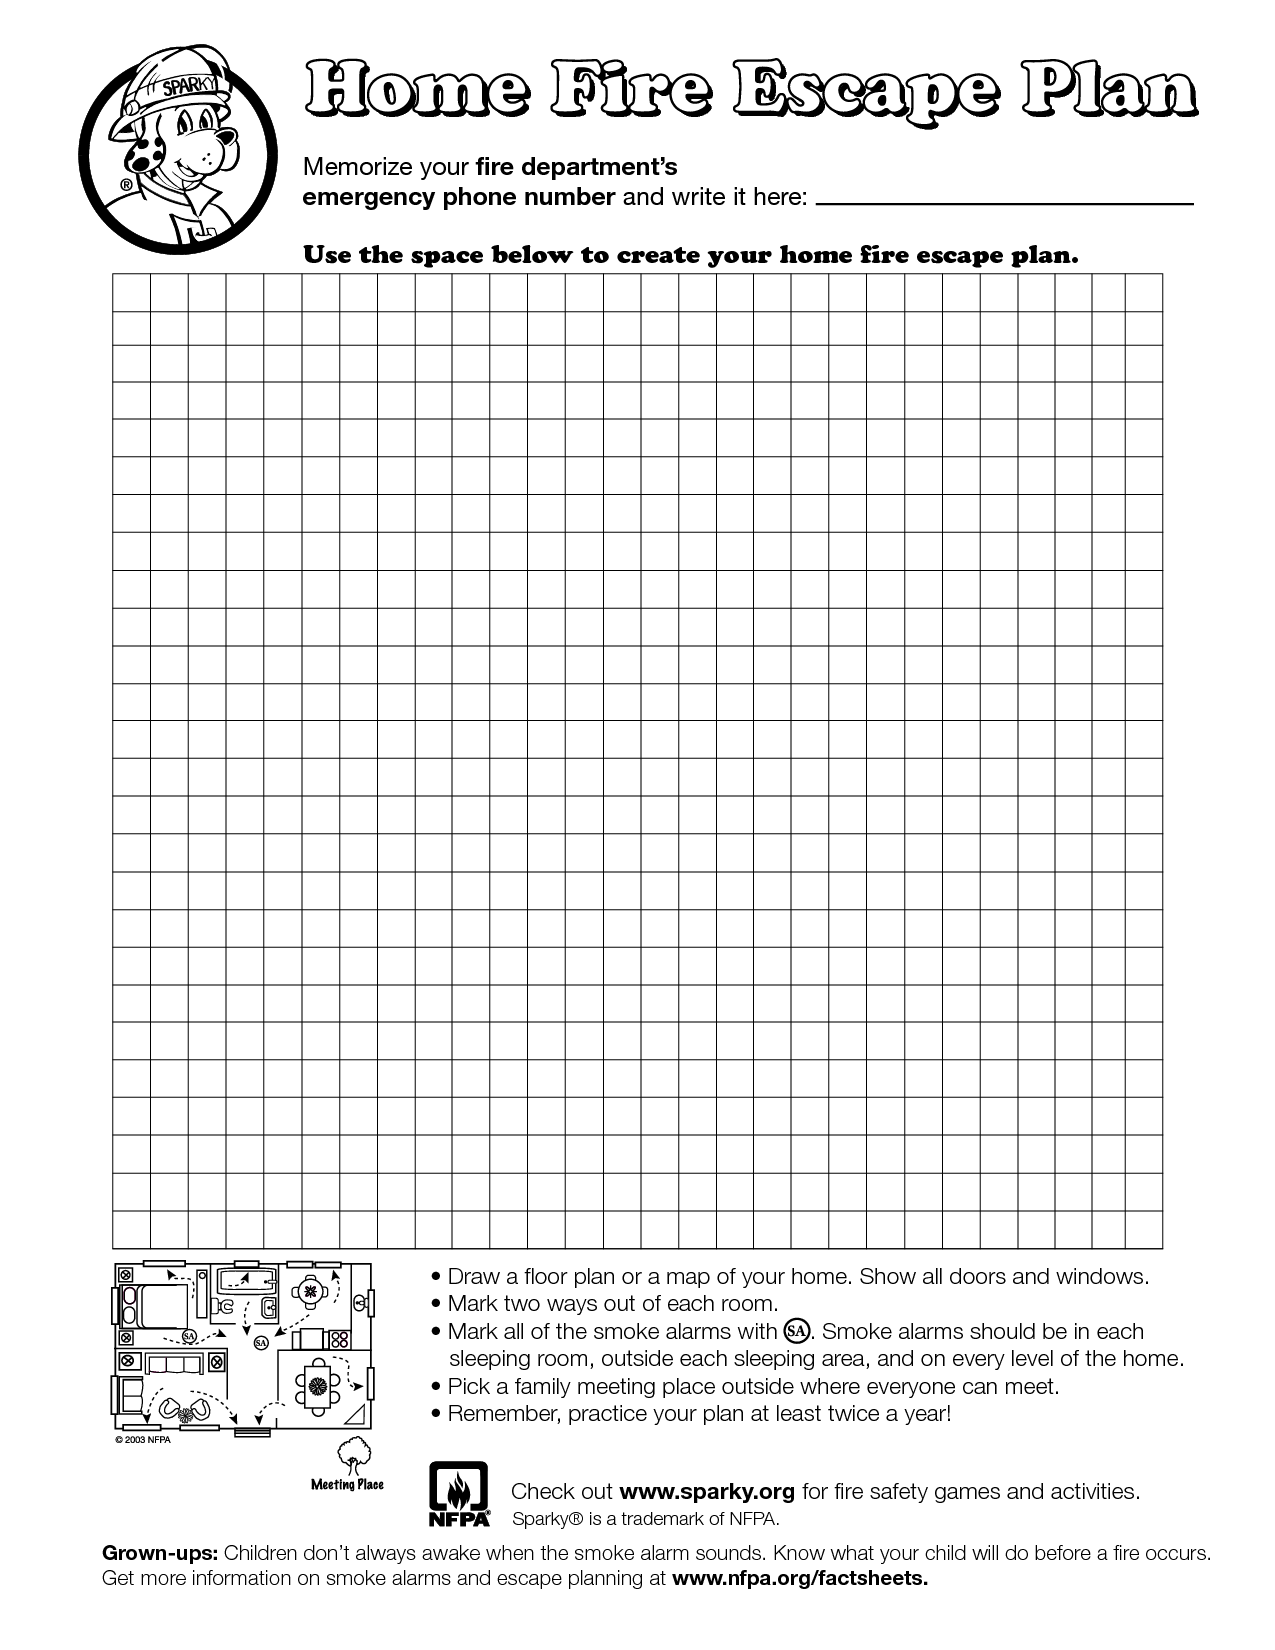 Home Fire Escape Plan Template  Education    Fire